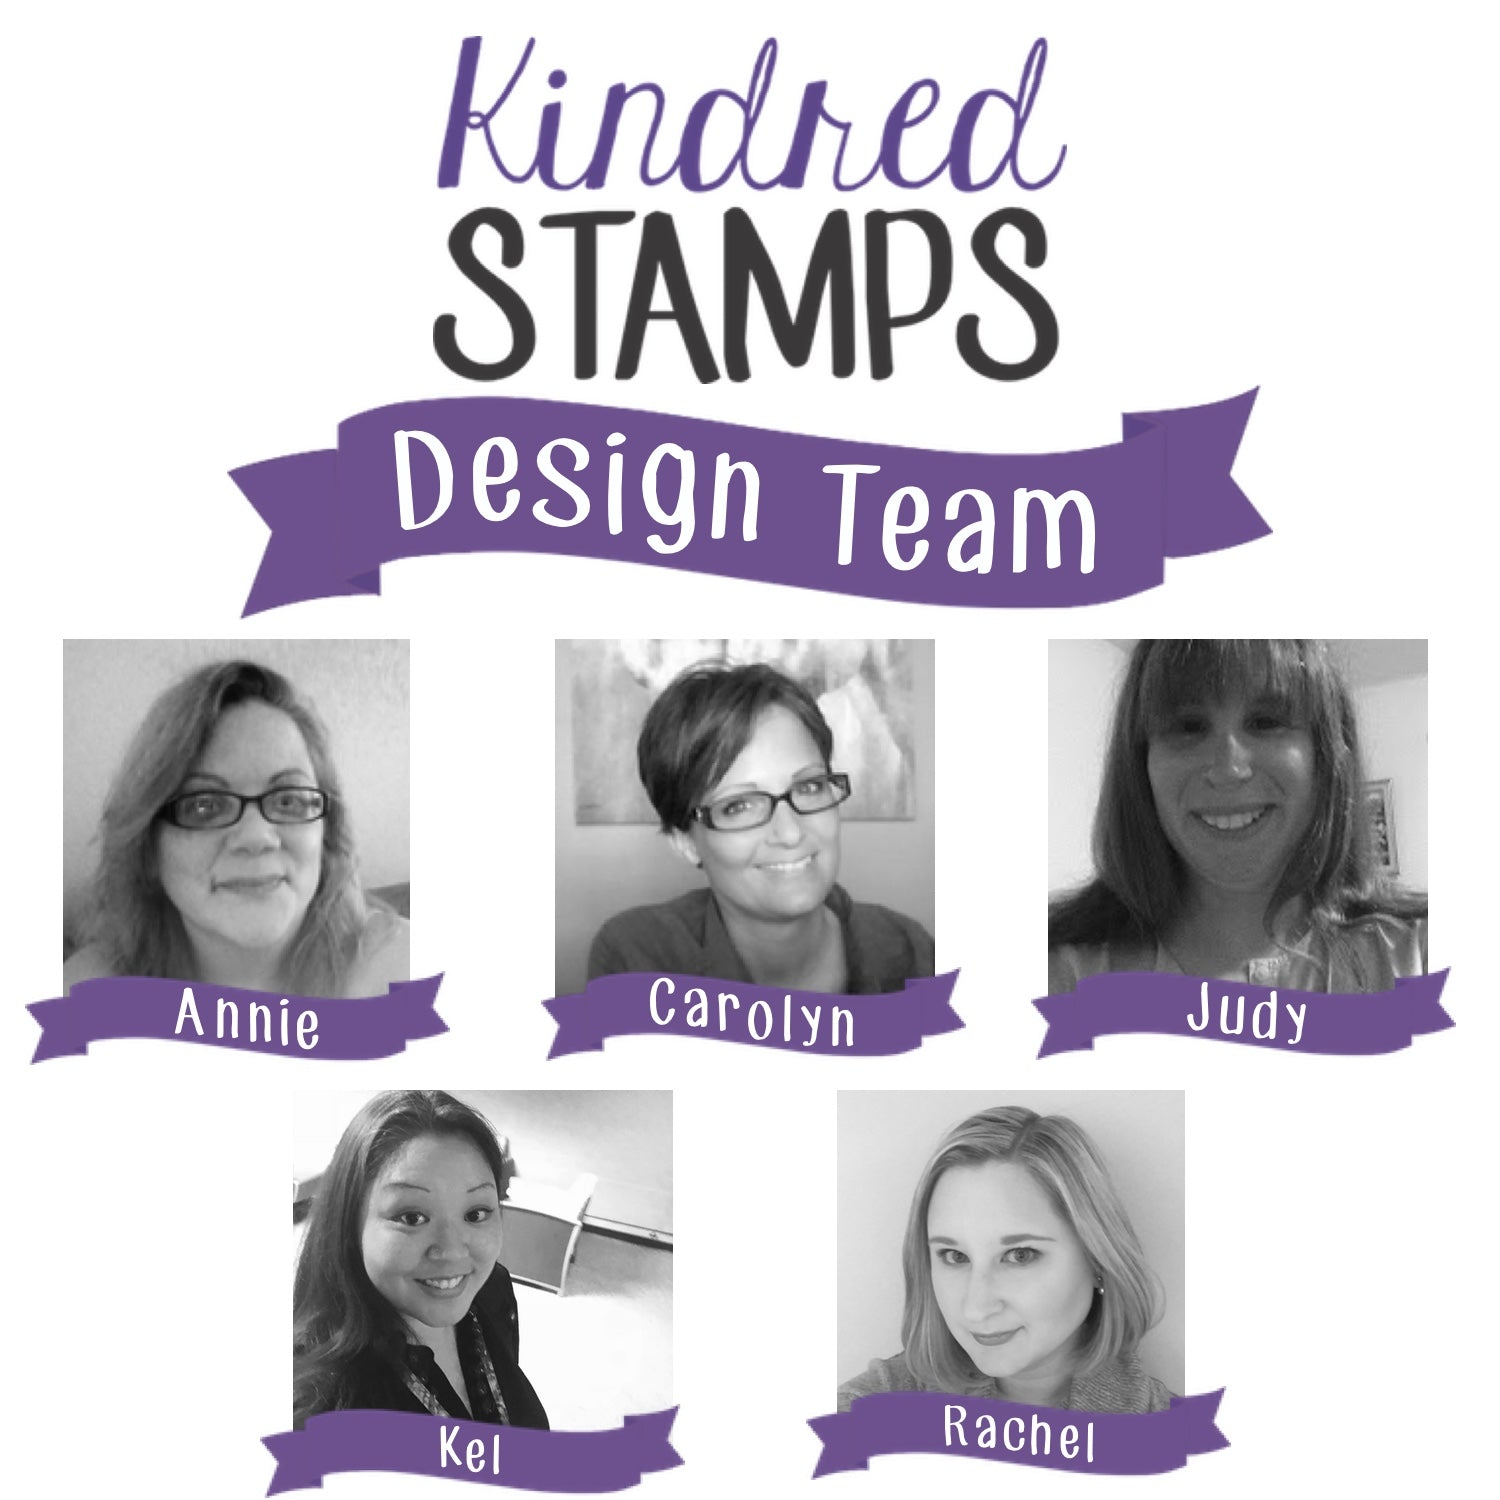 Introducing the newest Kindred Stamps Design Team!